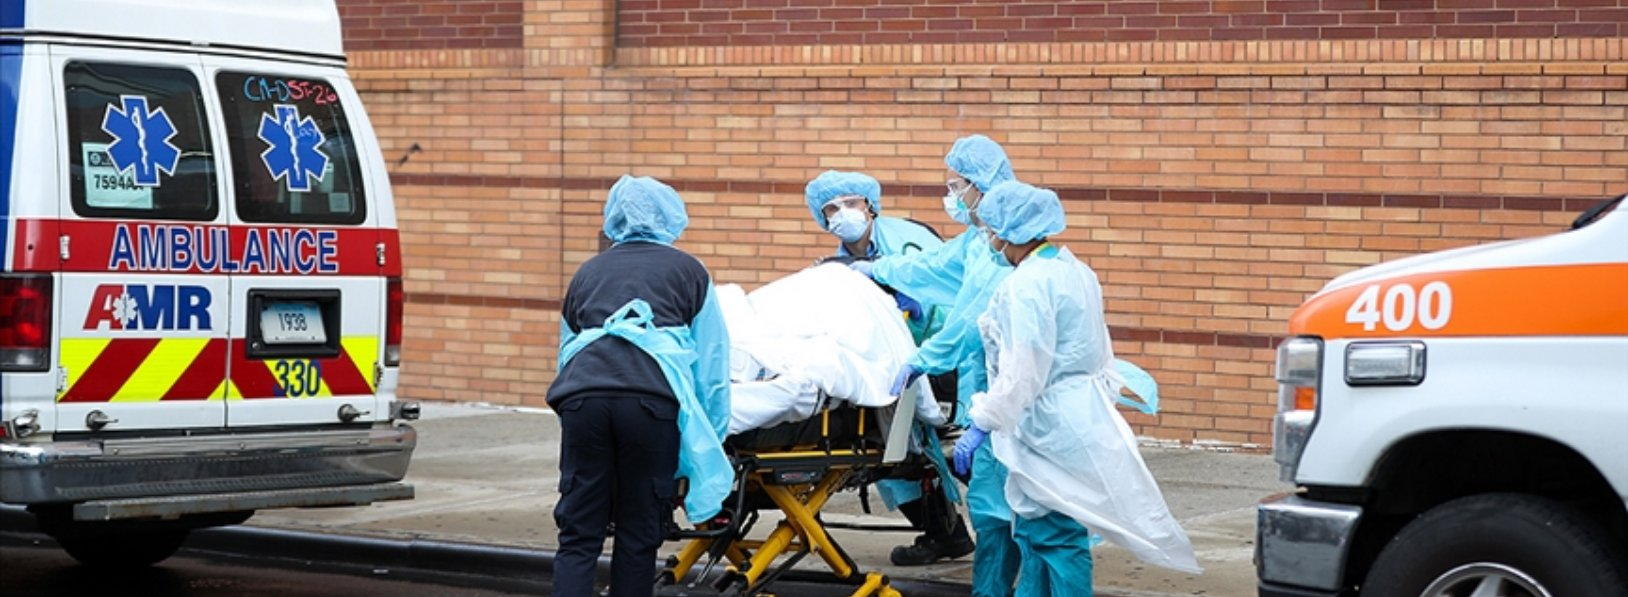 The number of deaths from Covid-19 exceeded 510,000 in the USA.